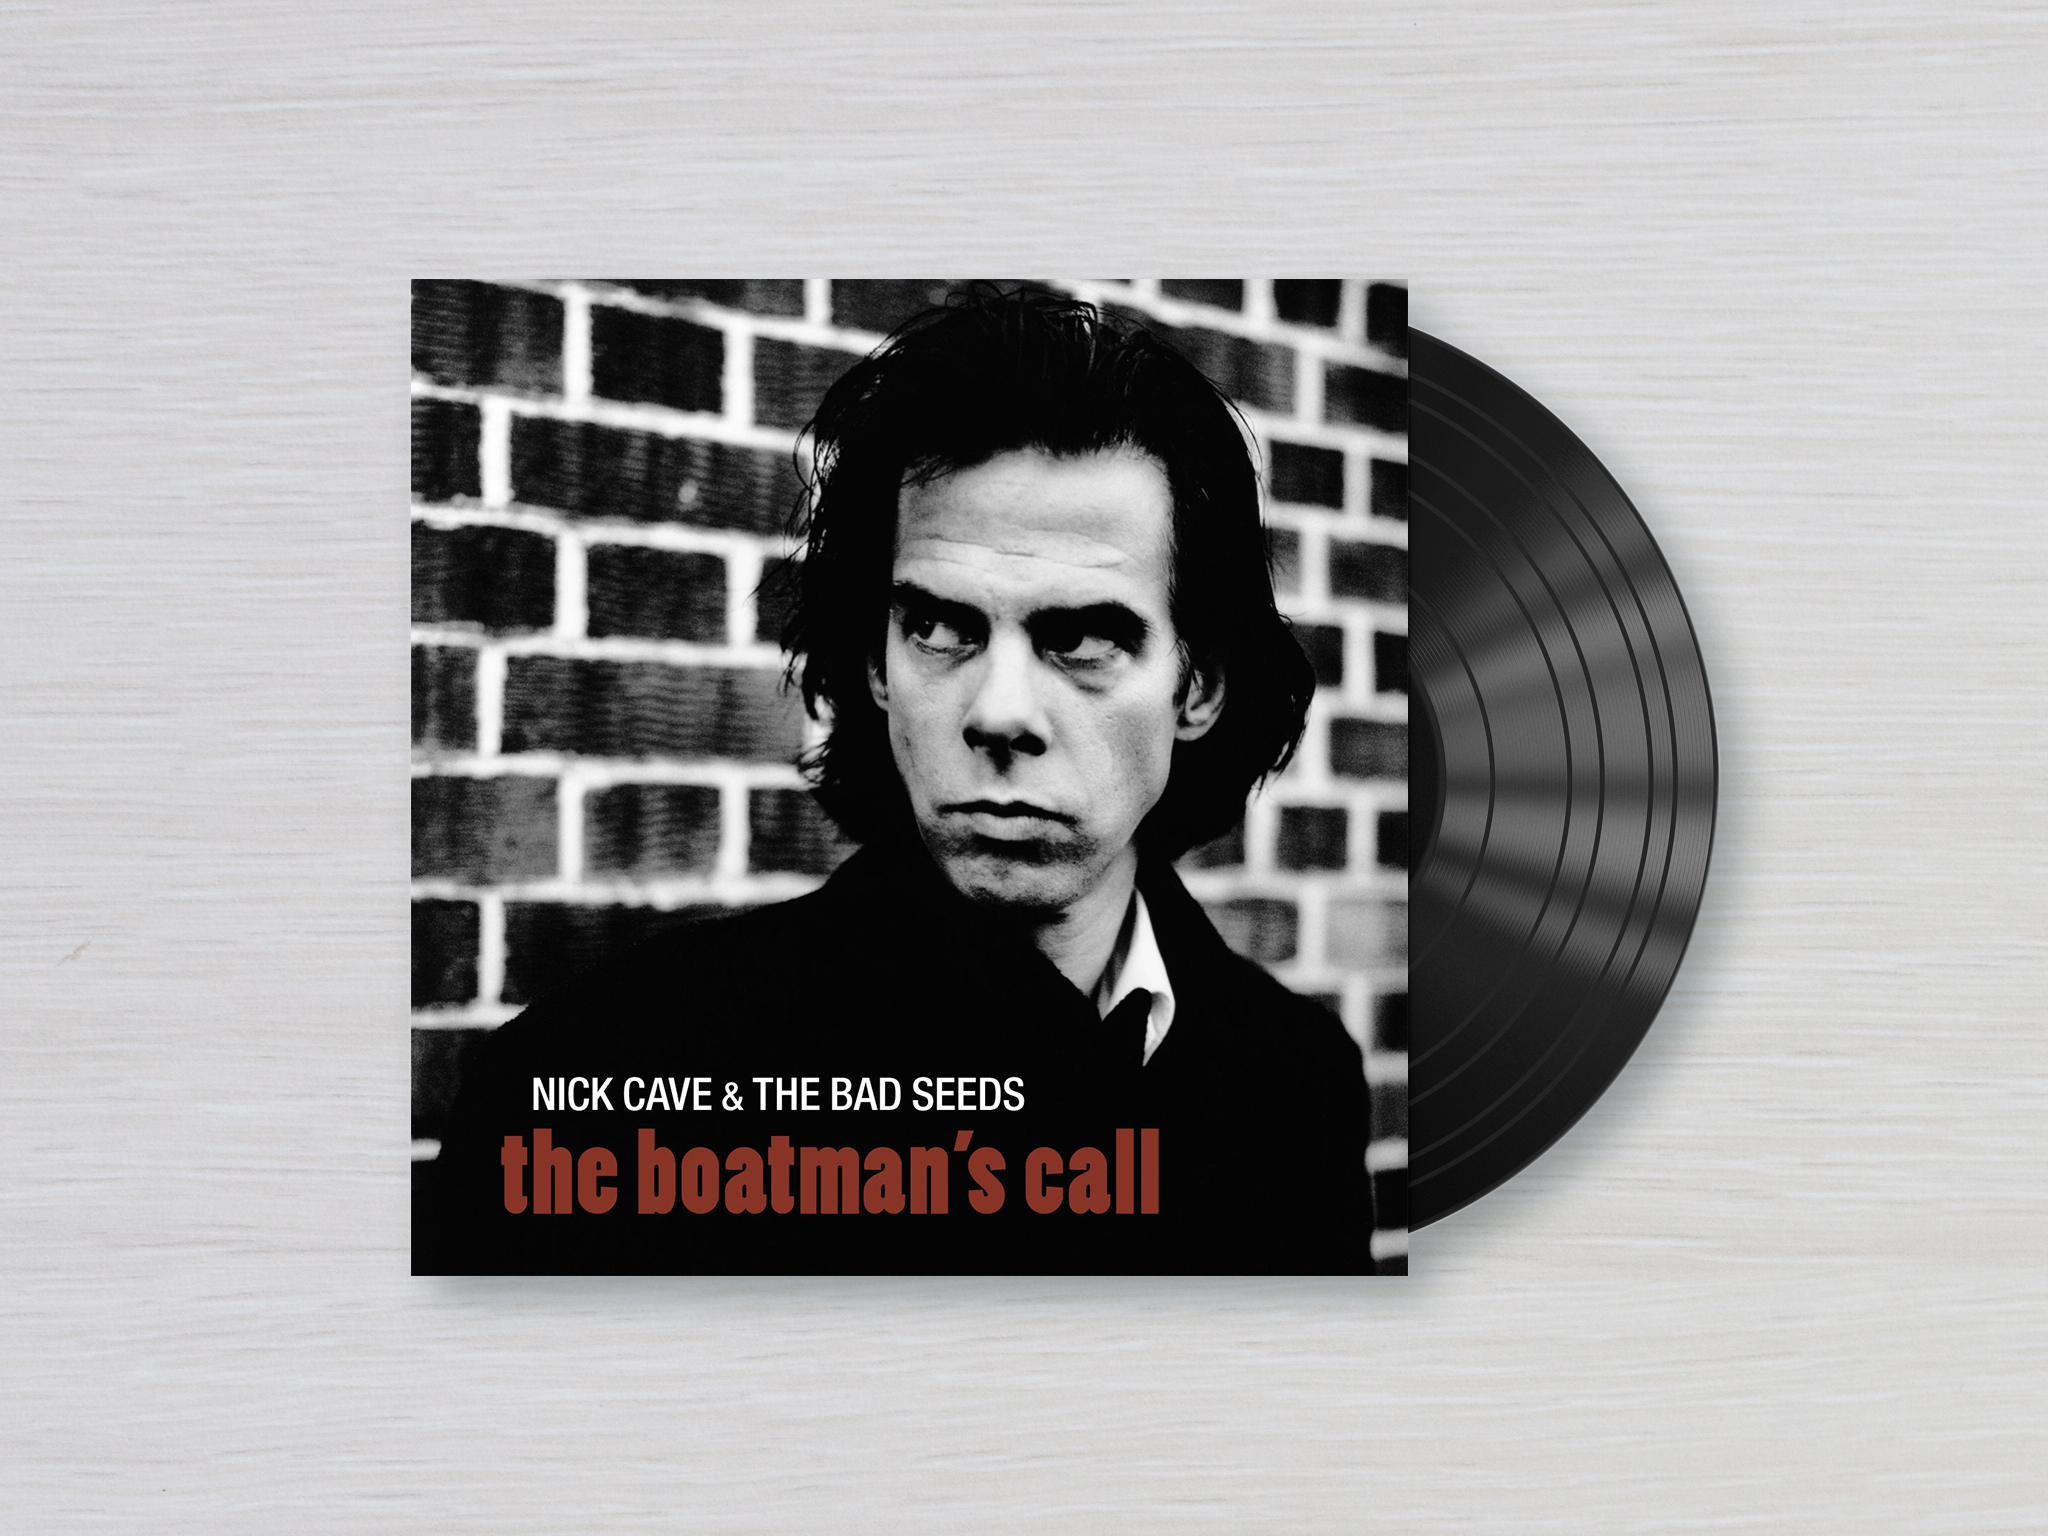 The Boatman's Call de Nick Cave and the Bad Seeds